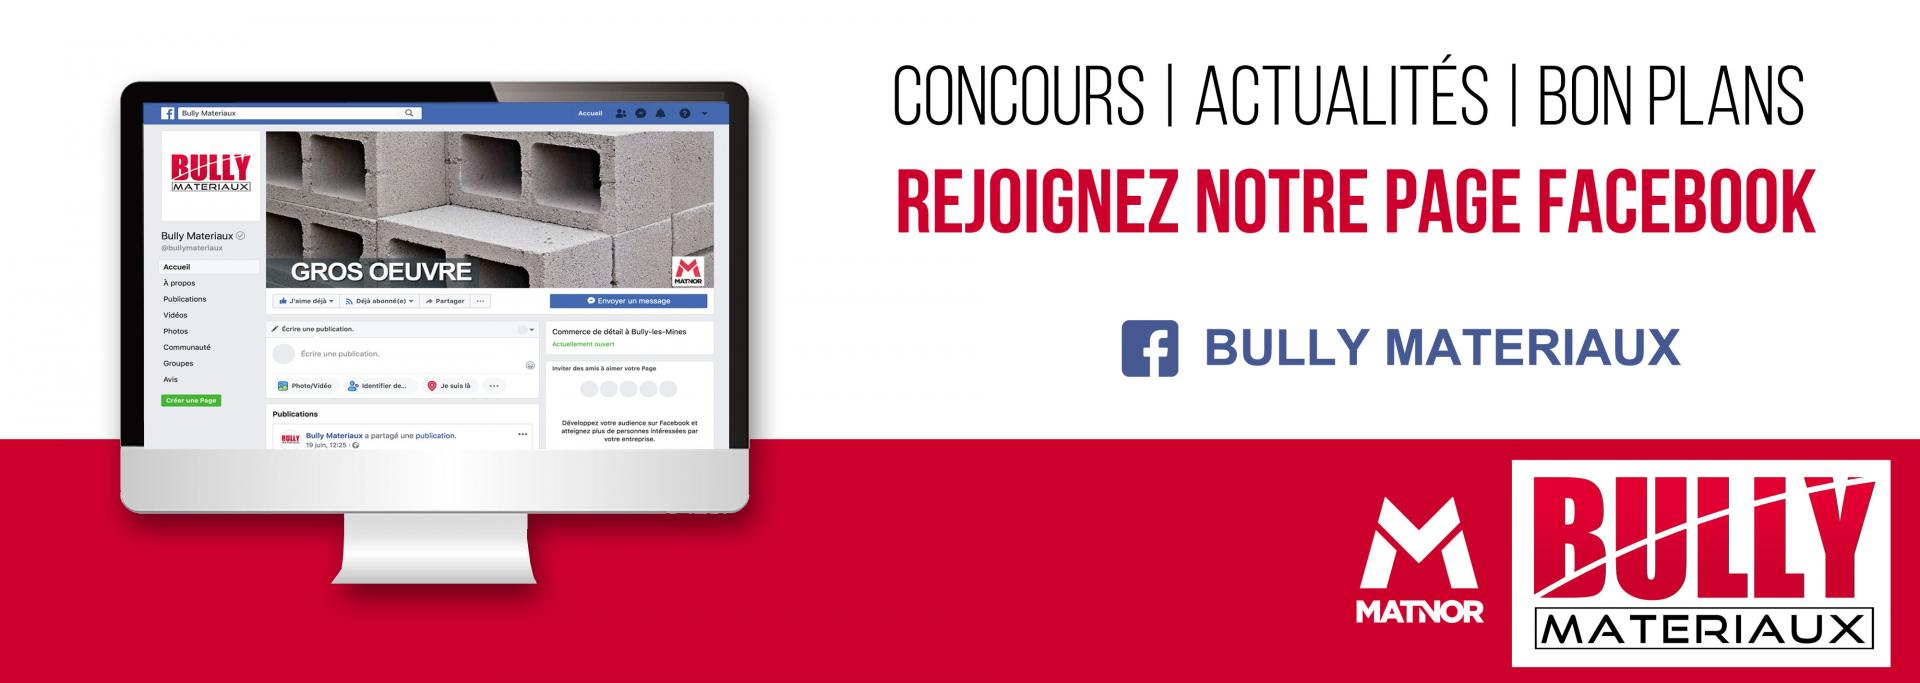 Facebook bully materiaux